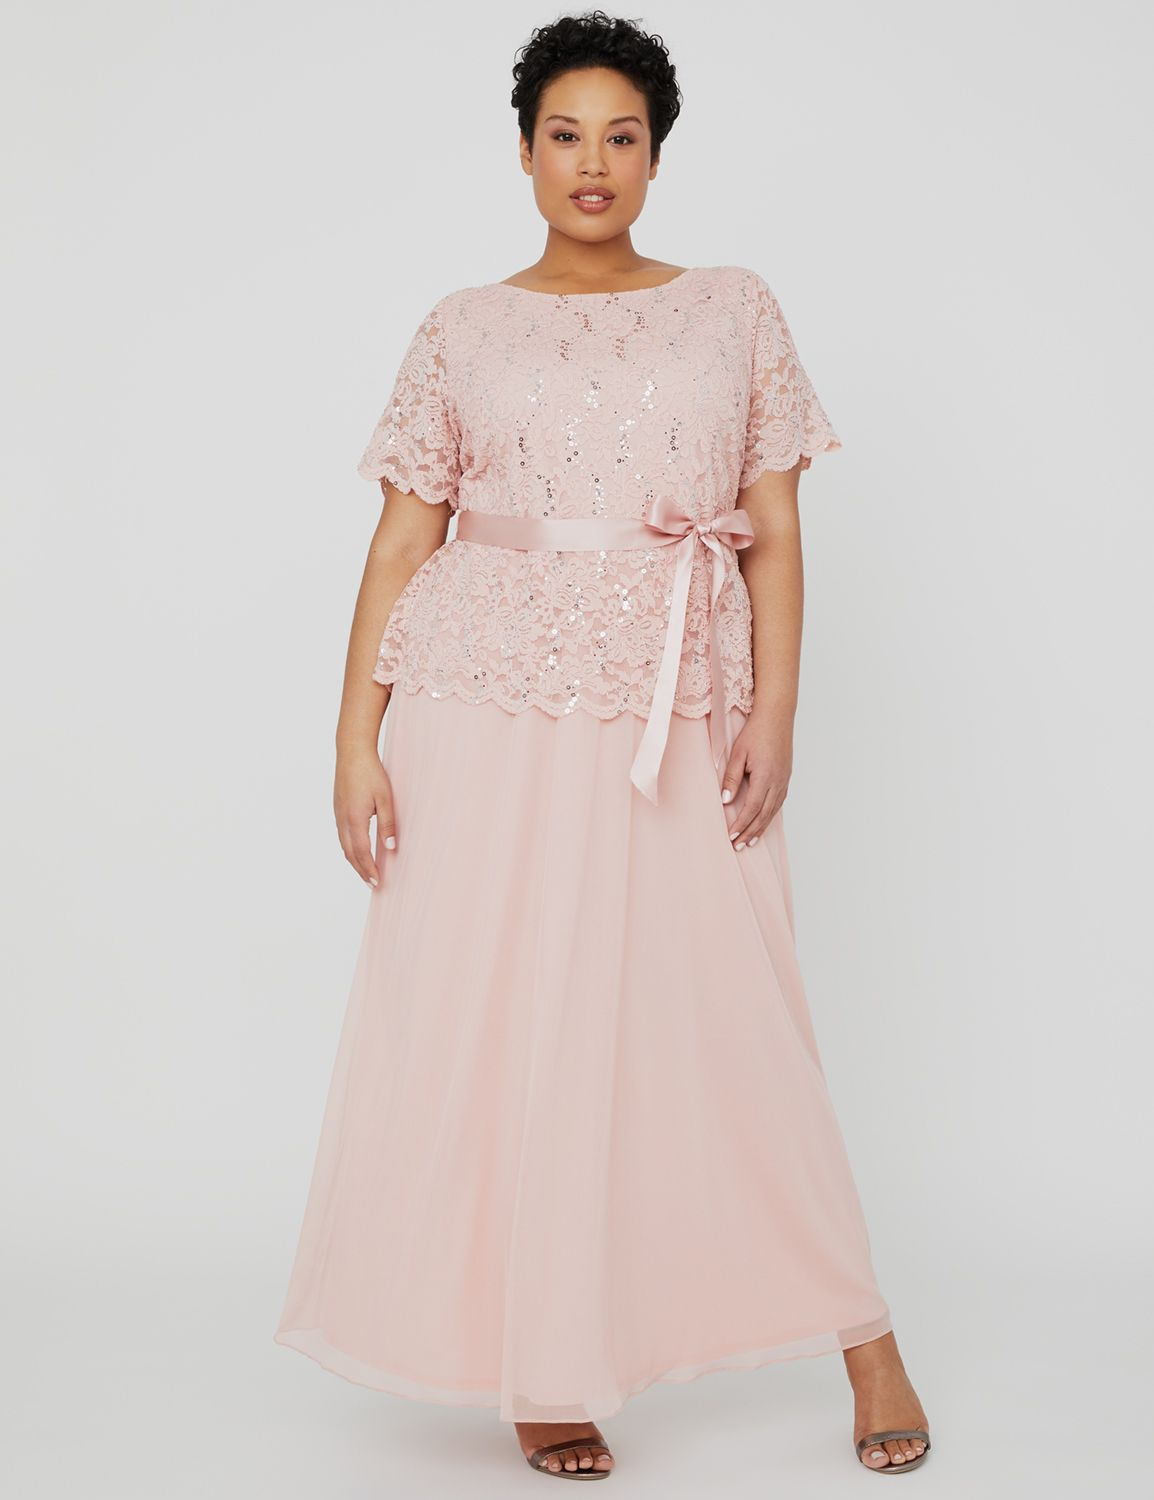 Blush Sunset Dress 1090995 Long Dress with Lace Bodice MP-300101536